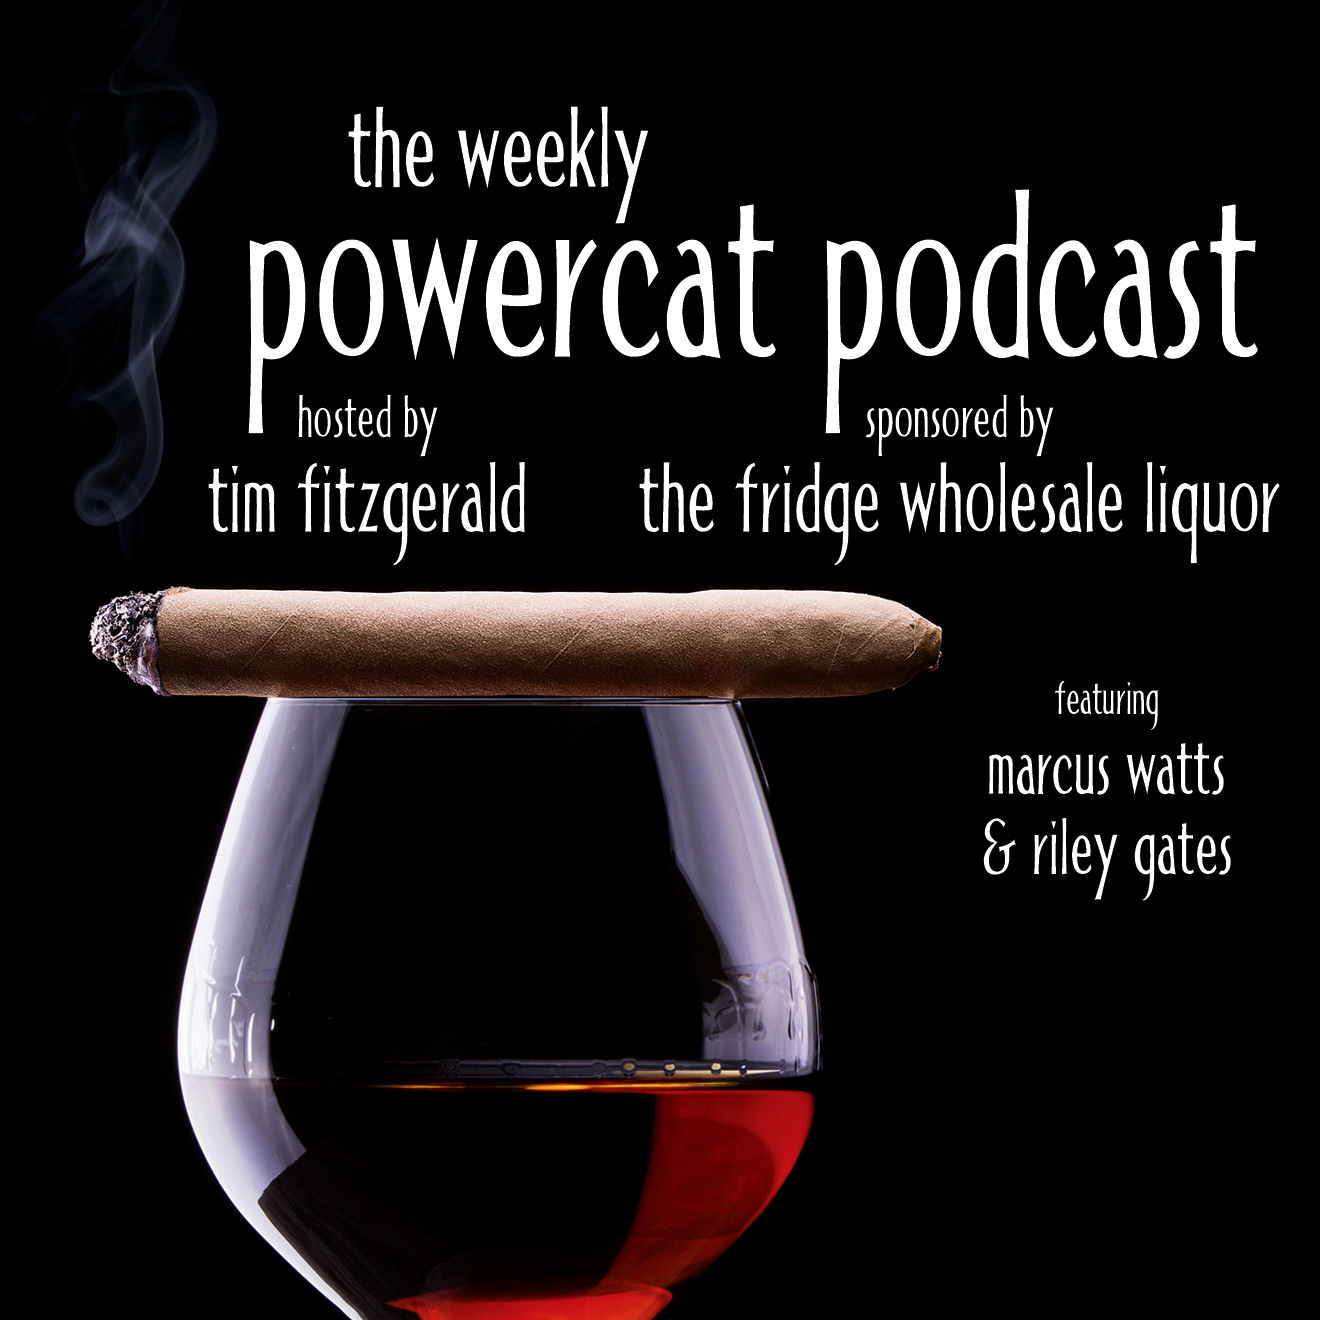 The Powercat Podcast 10.26.16